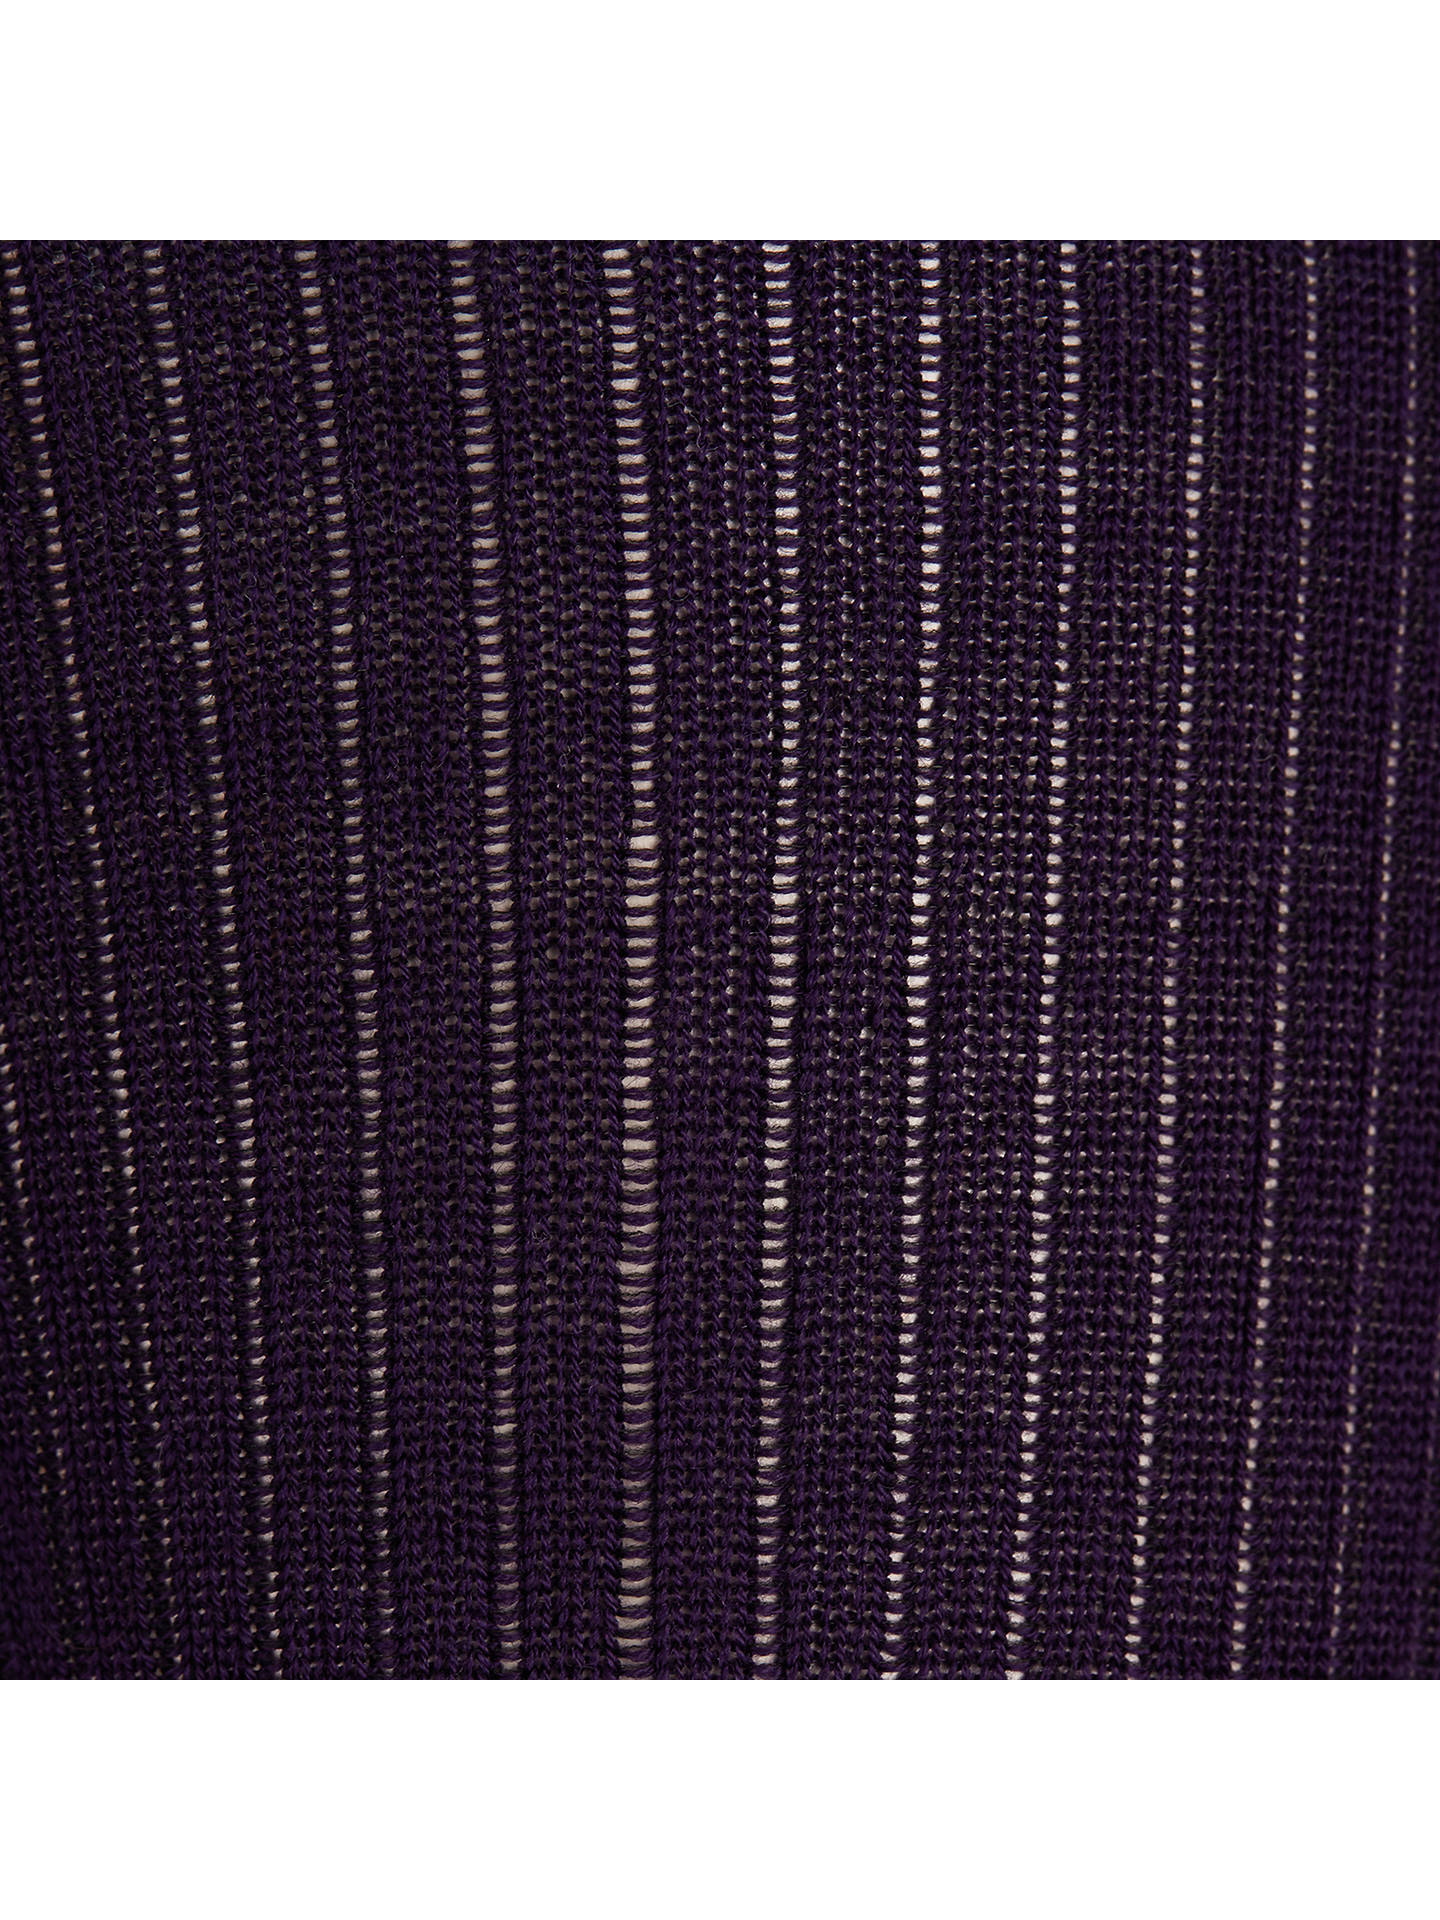 BuyJohn Lewis Wool Ribbed Tights, Purple, S Online at johnlewis.com